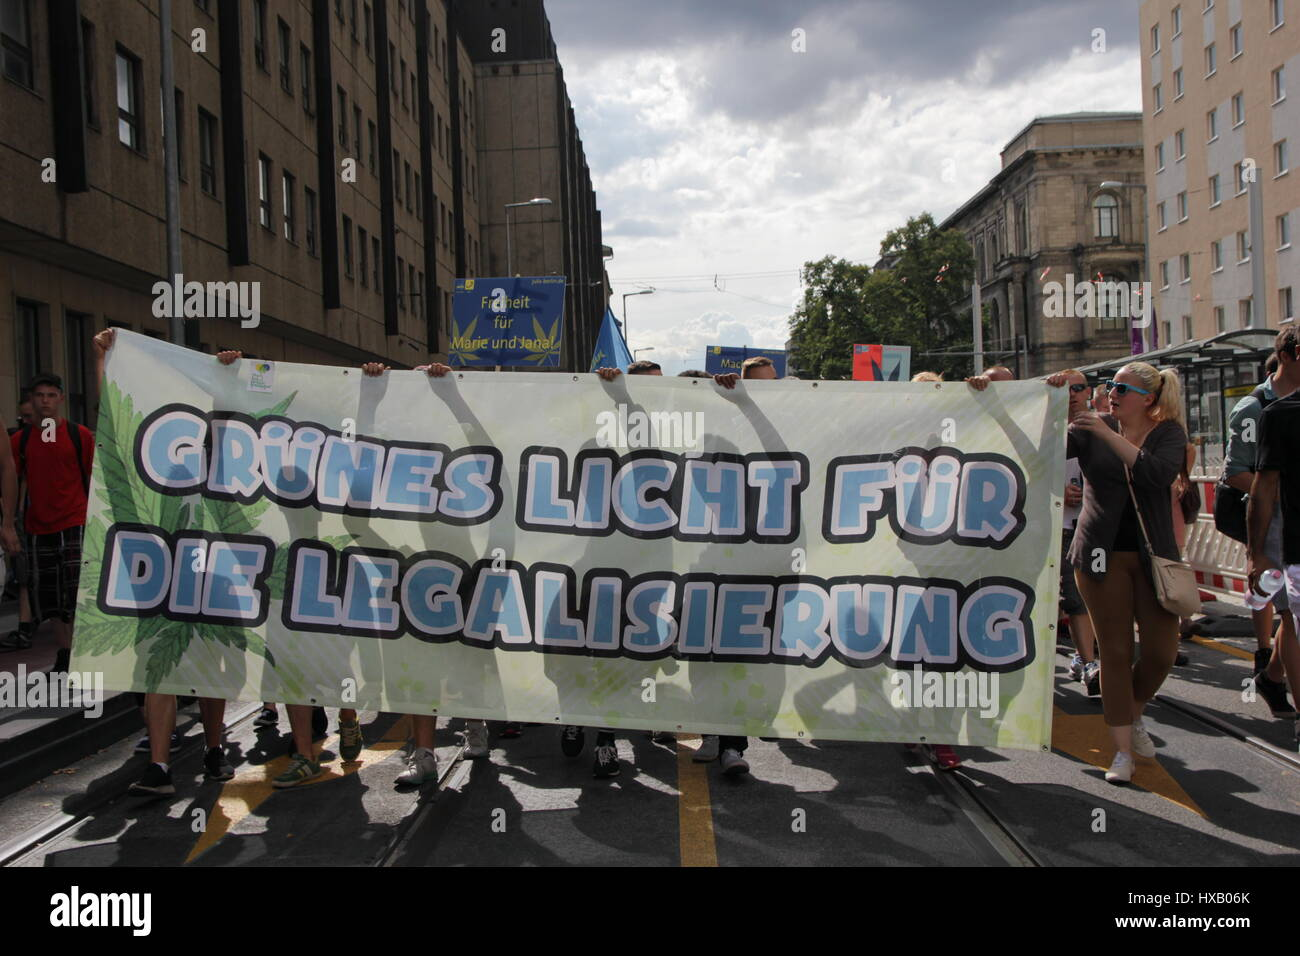 Berlin, Germany, August 9th, 2014: Hemp parade rally held for legalisation of cannabis. Stock Photo